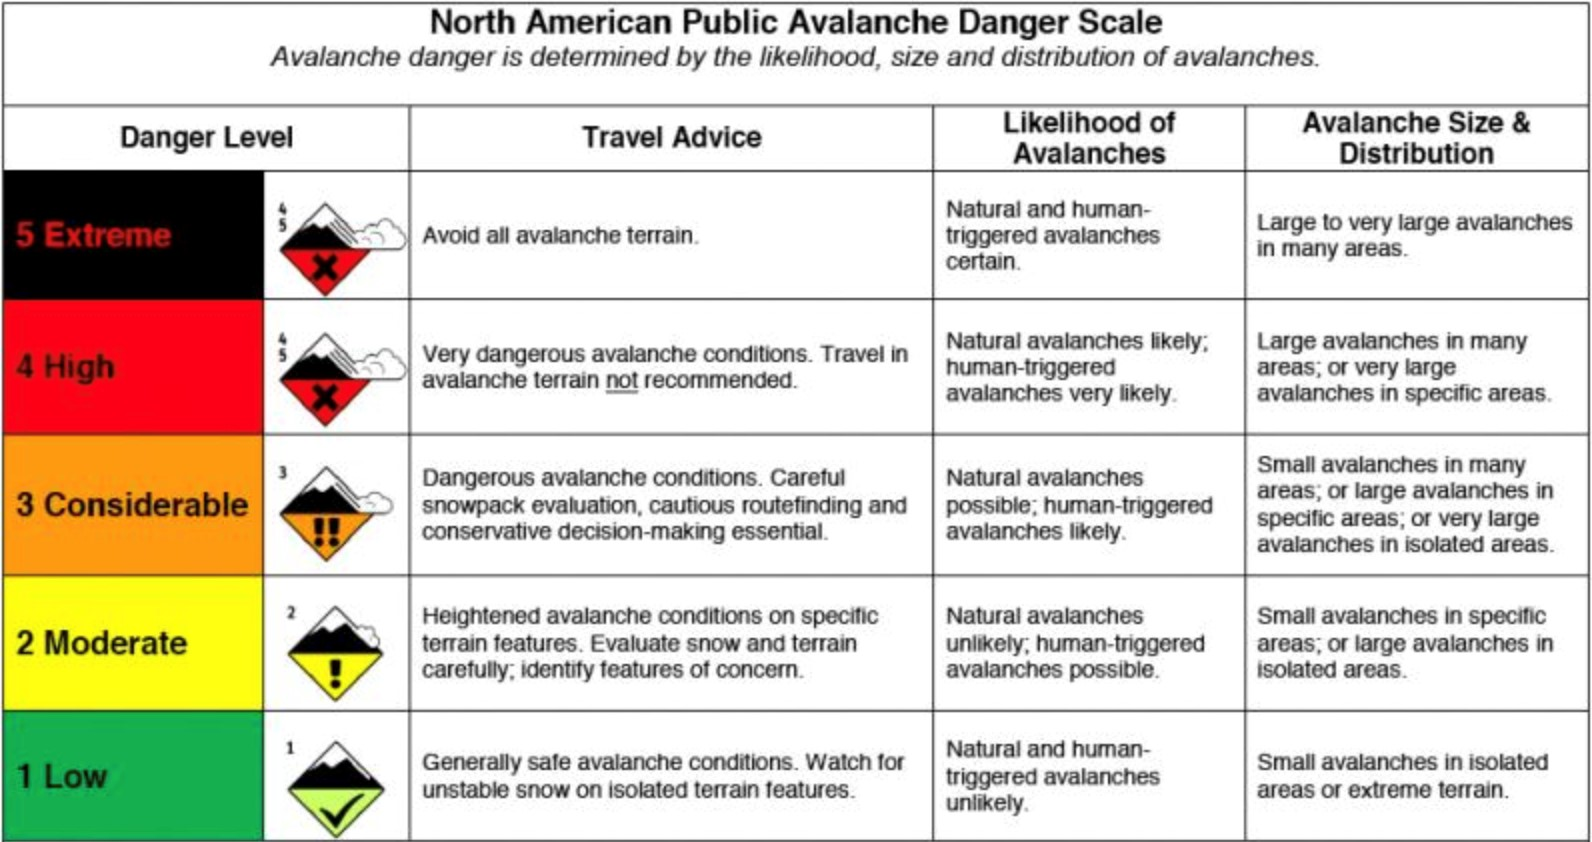 North American avalanche danger scale